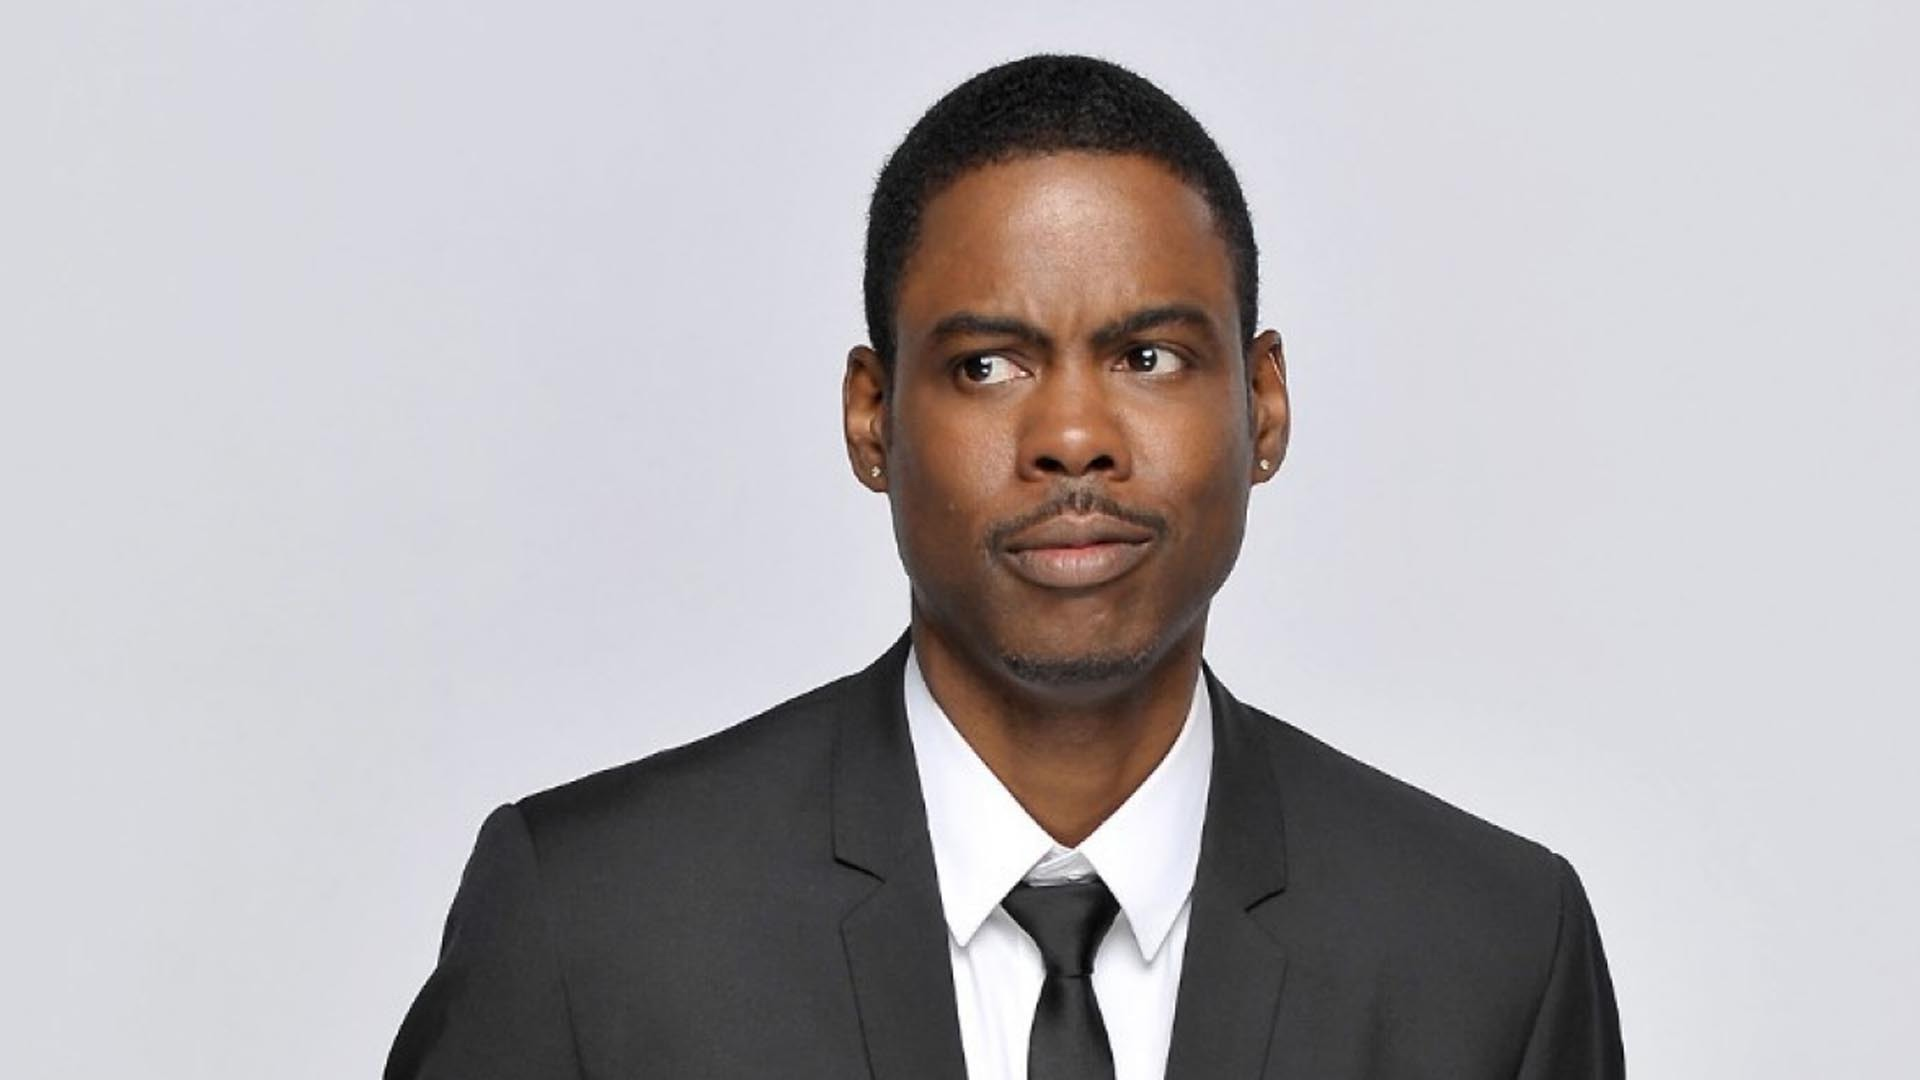 Chris Rock Wallpapers Images Photos Pictures Backgrounds 1920x1080